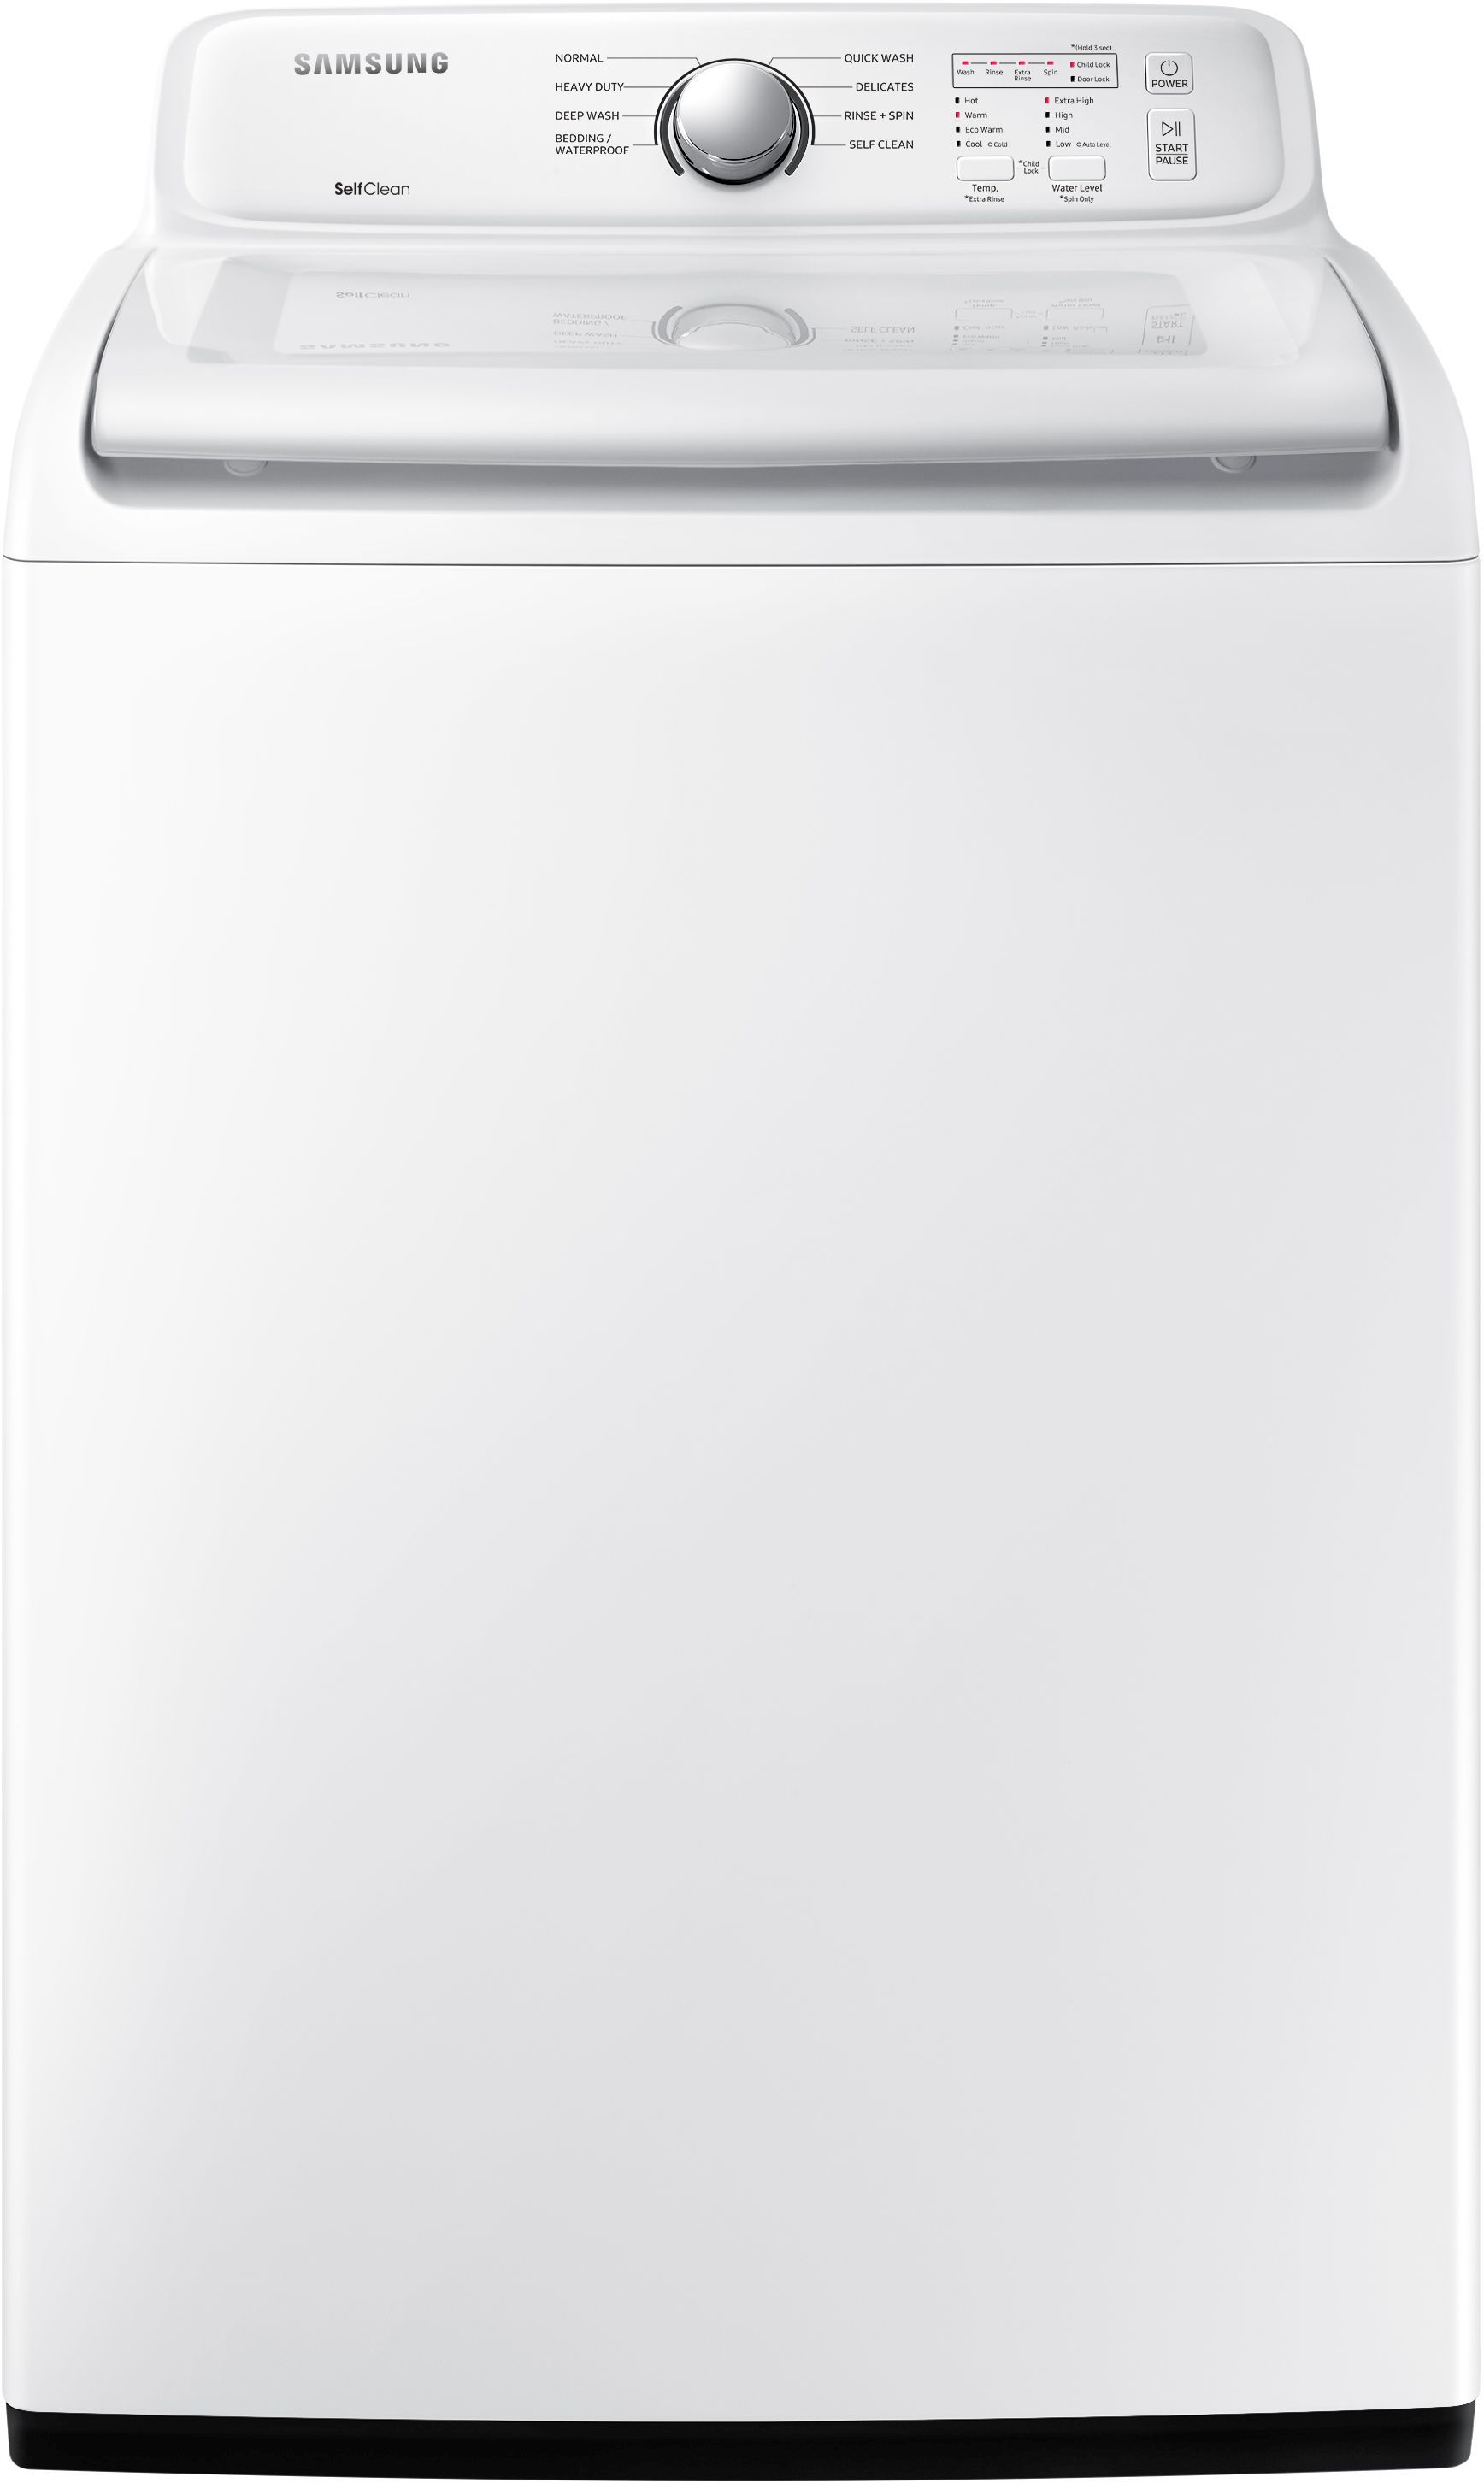 Samsung Top Load Washer White Wa45n3050aw Spencer S Tv